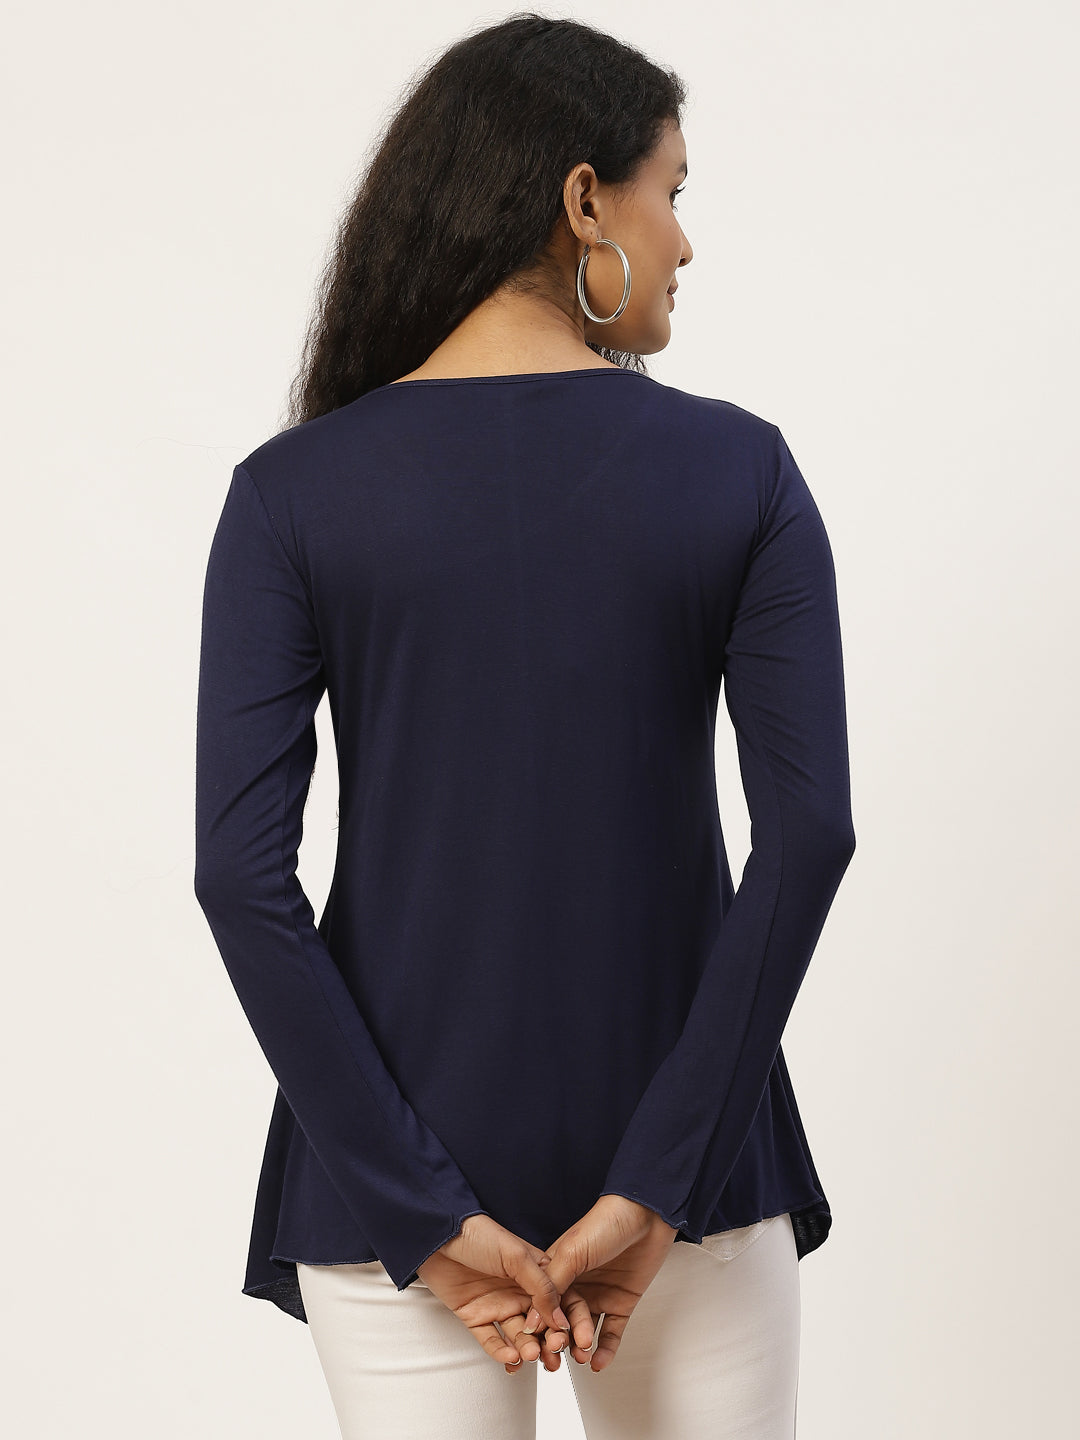 Solid Navy Blue Shrug